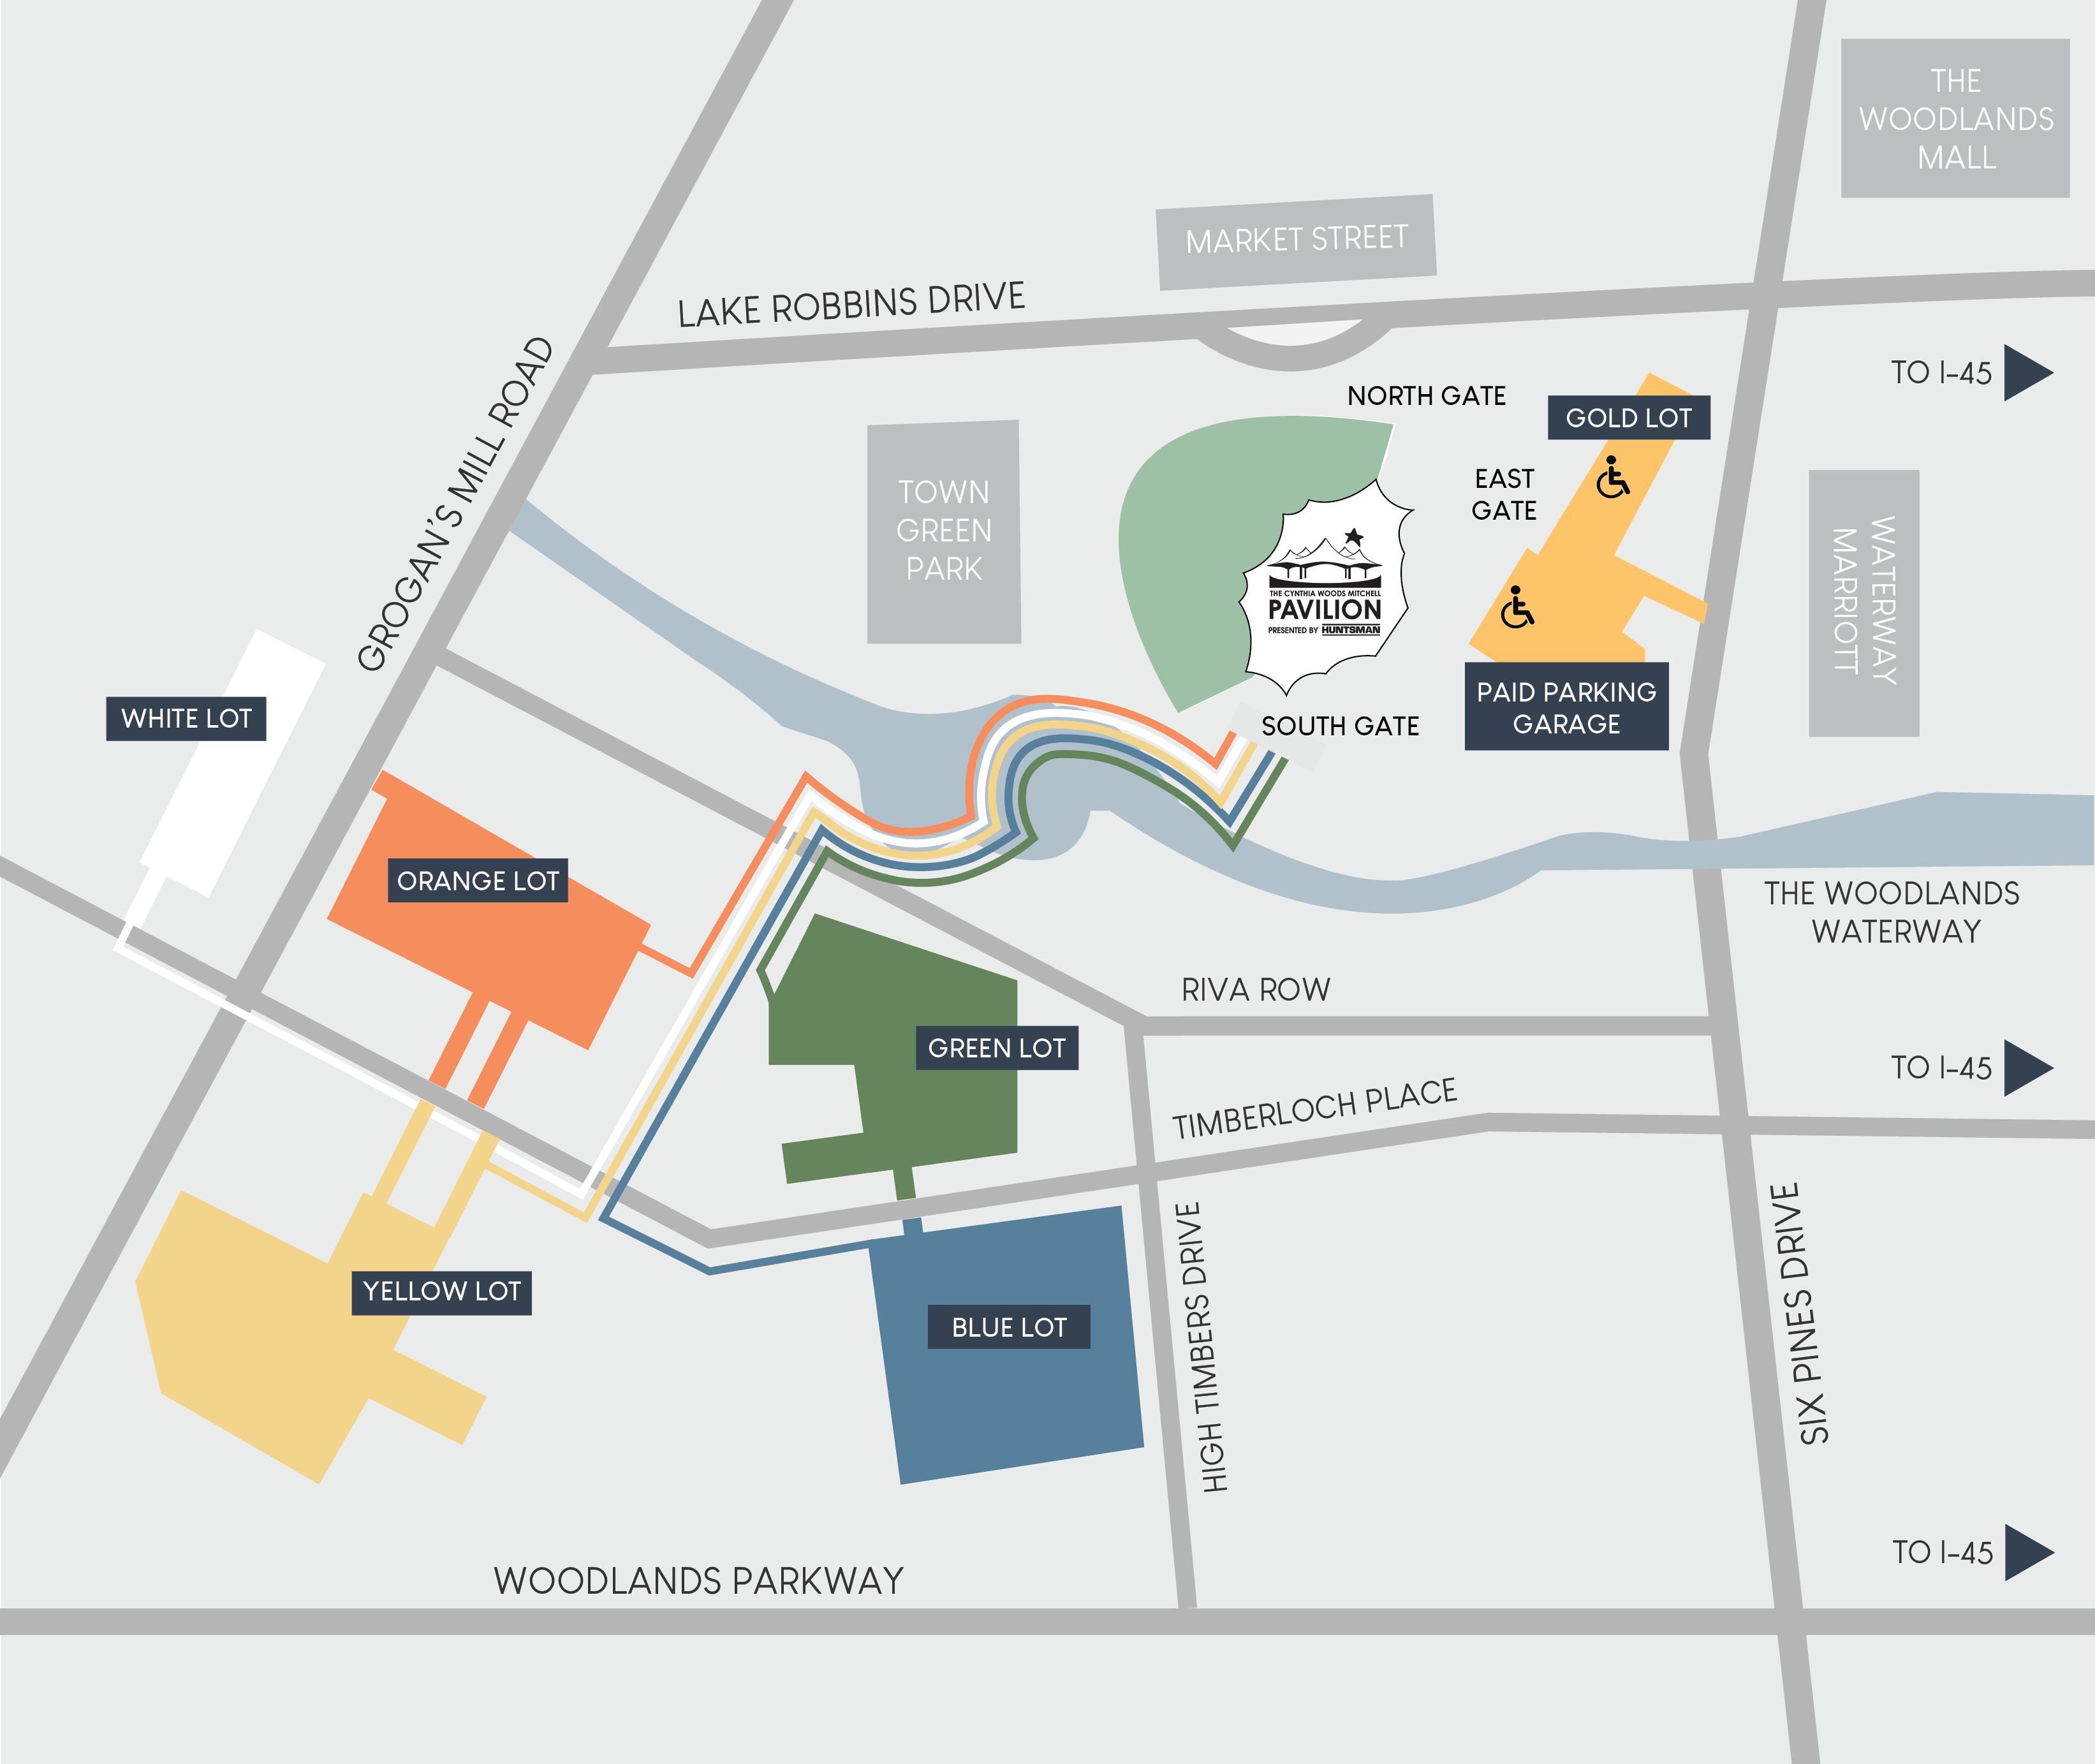 Pavilion Public Parking and Pathways Map